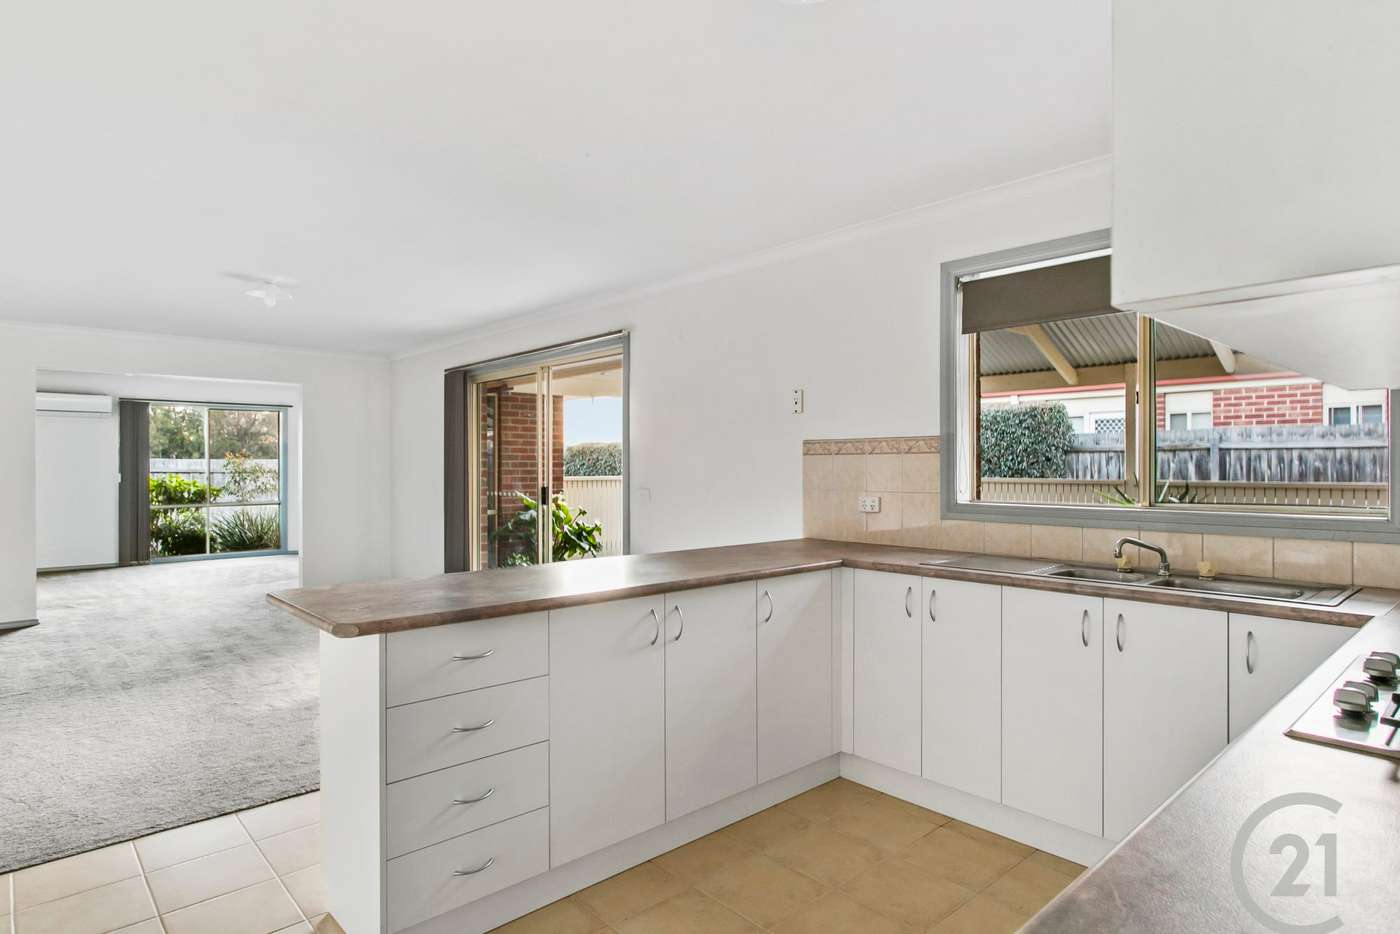 Fifth view of Homely house listing, 84 Ebony Drive, Pakenham VIC 3810